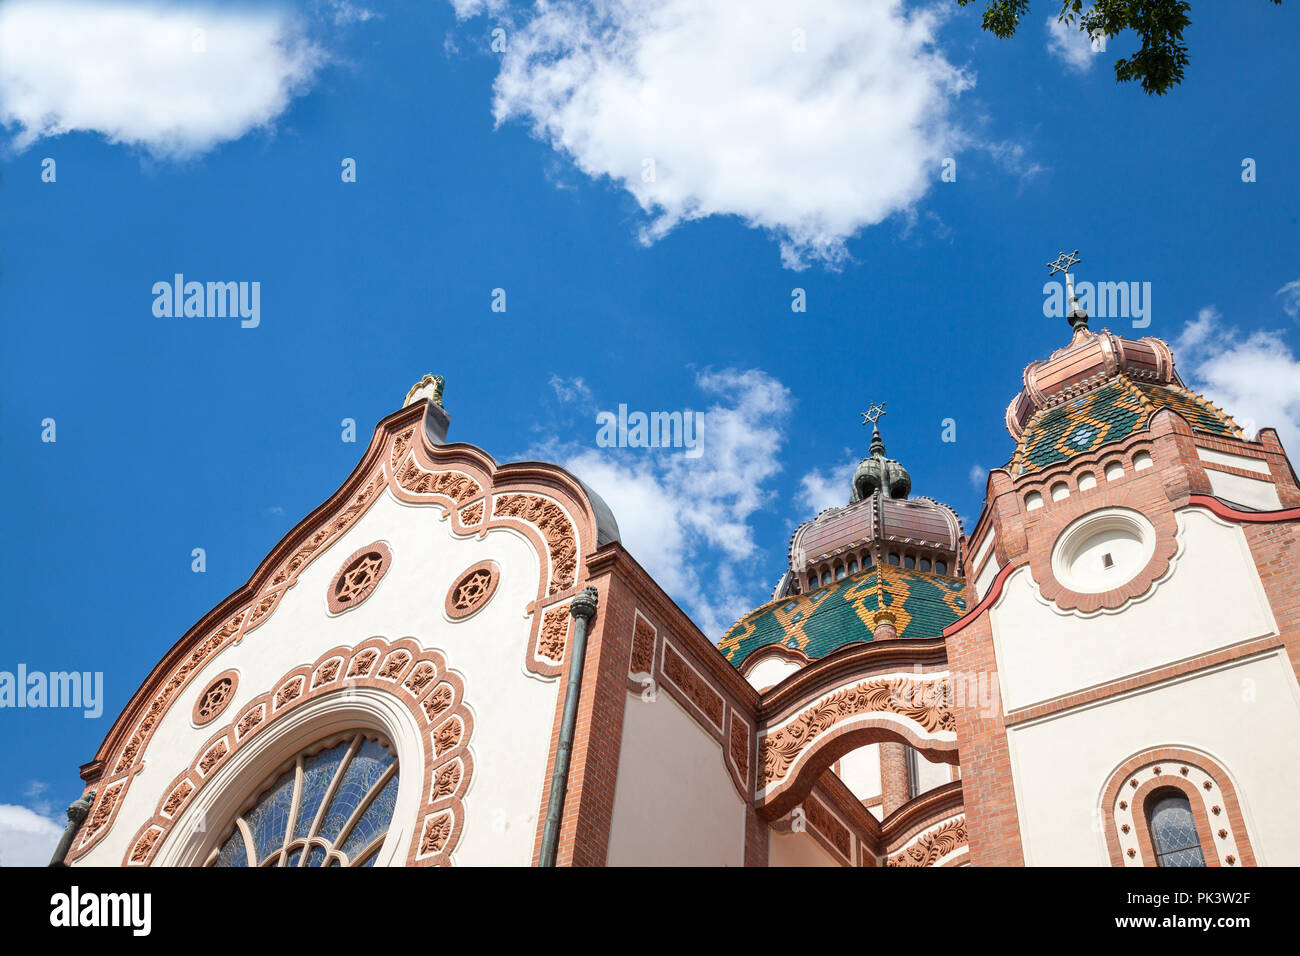 Subotica synagogue seen from the bottom during the afternoon. Also known as Jakab and Komor Synagogue, it is a symbol of the Central European judaism  Stock Photo